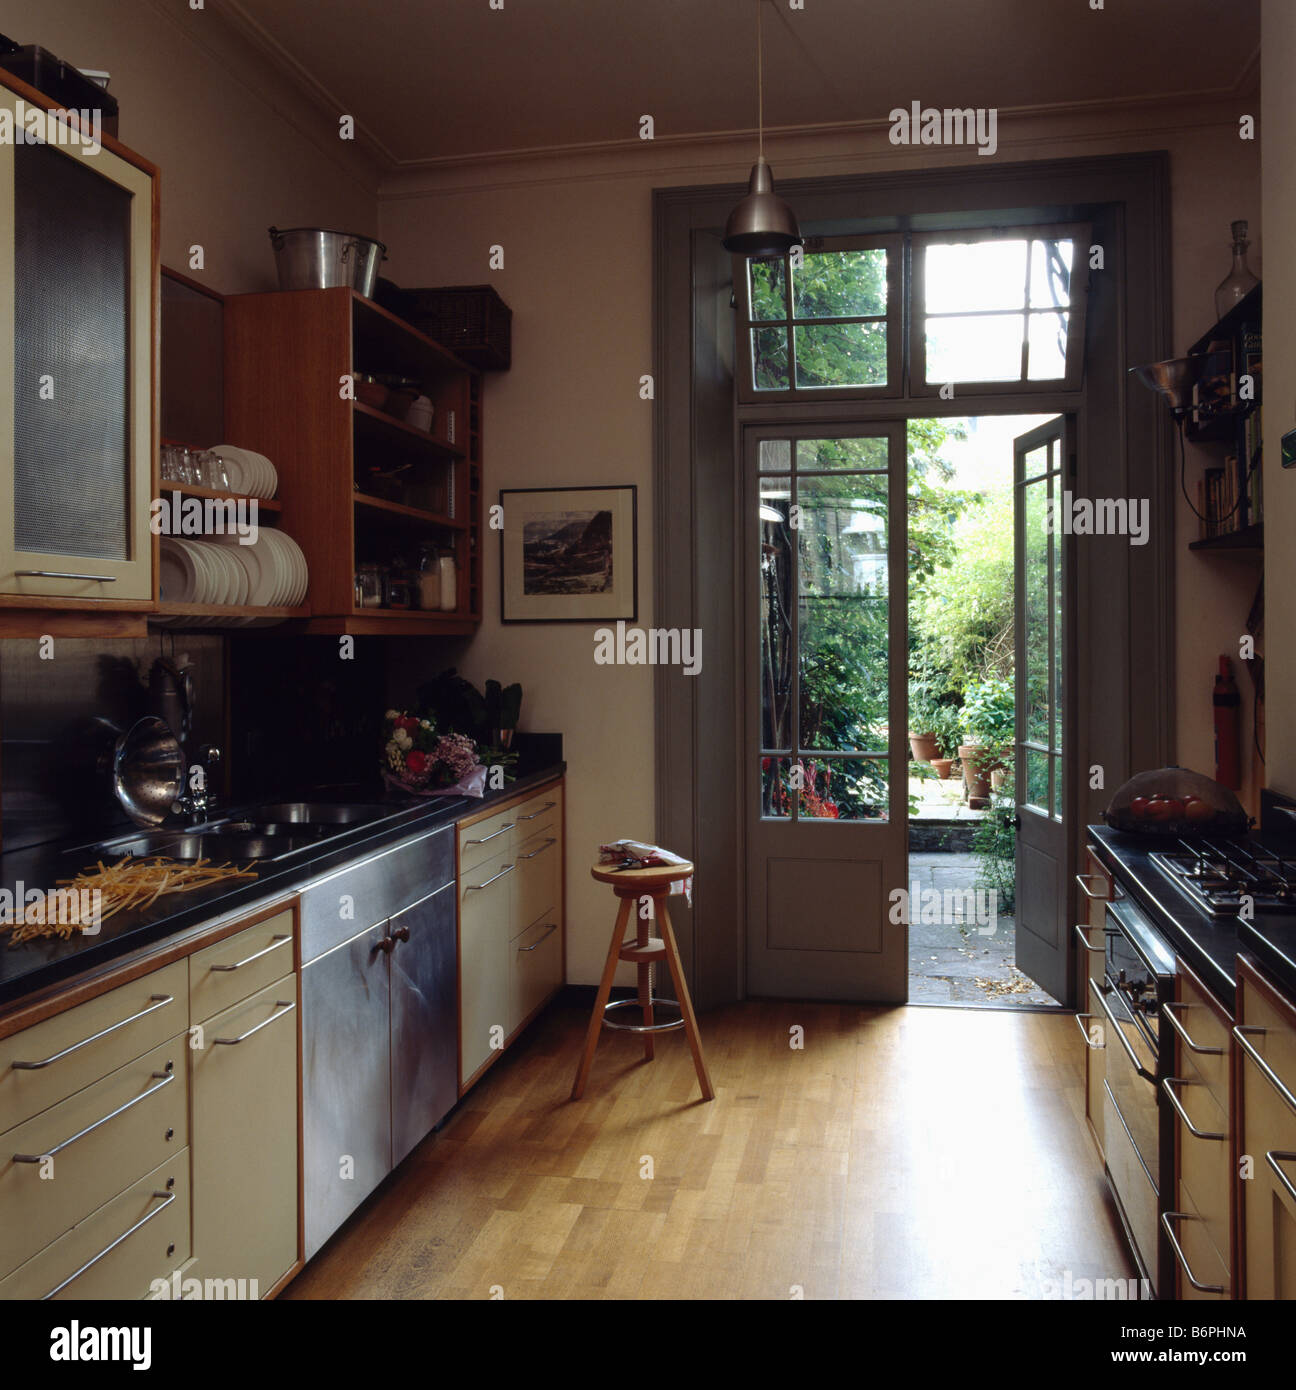 Wooden Flooring In Modern Galley Kitchen With French Doors Open To The  Garden Amazing Ideas